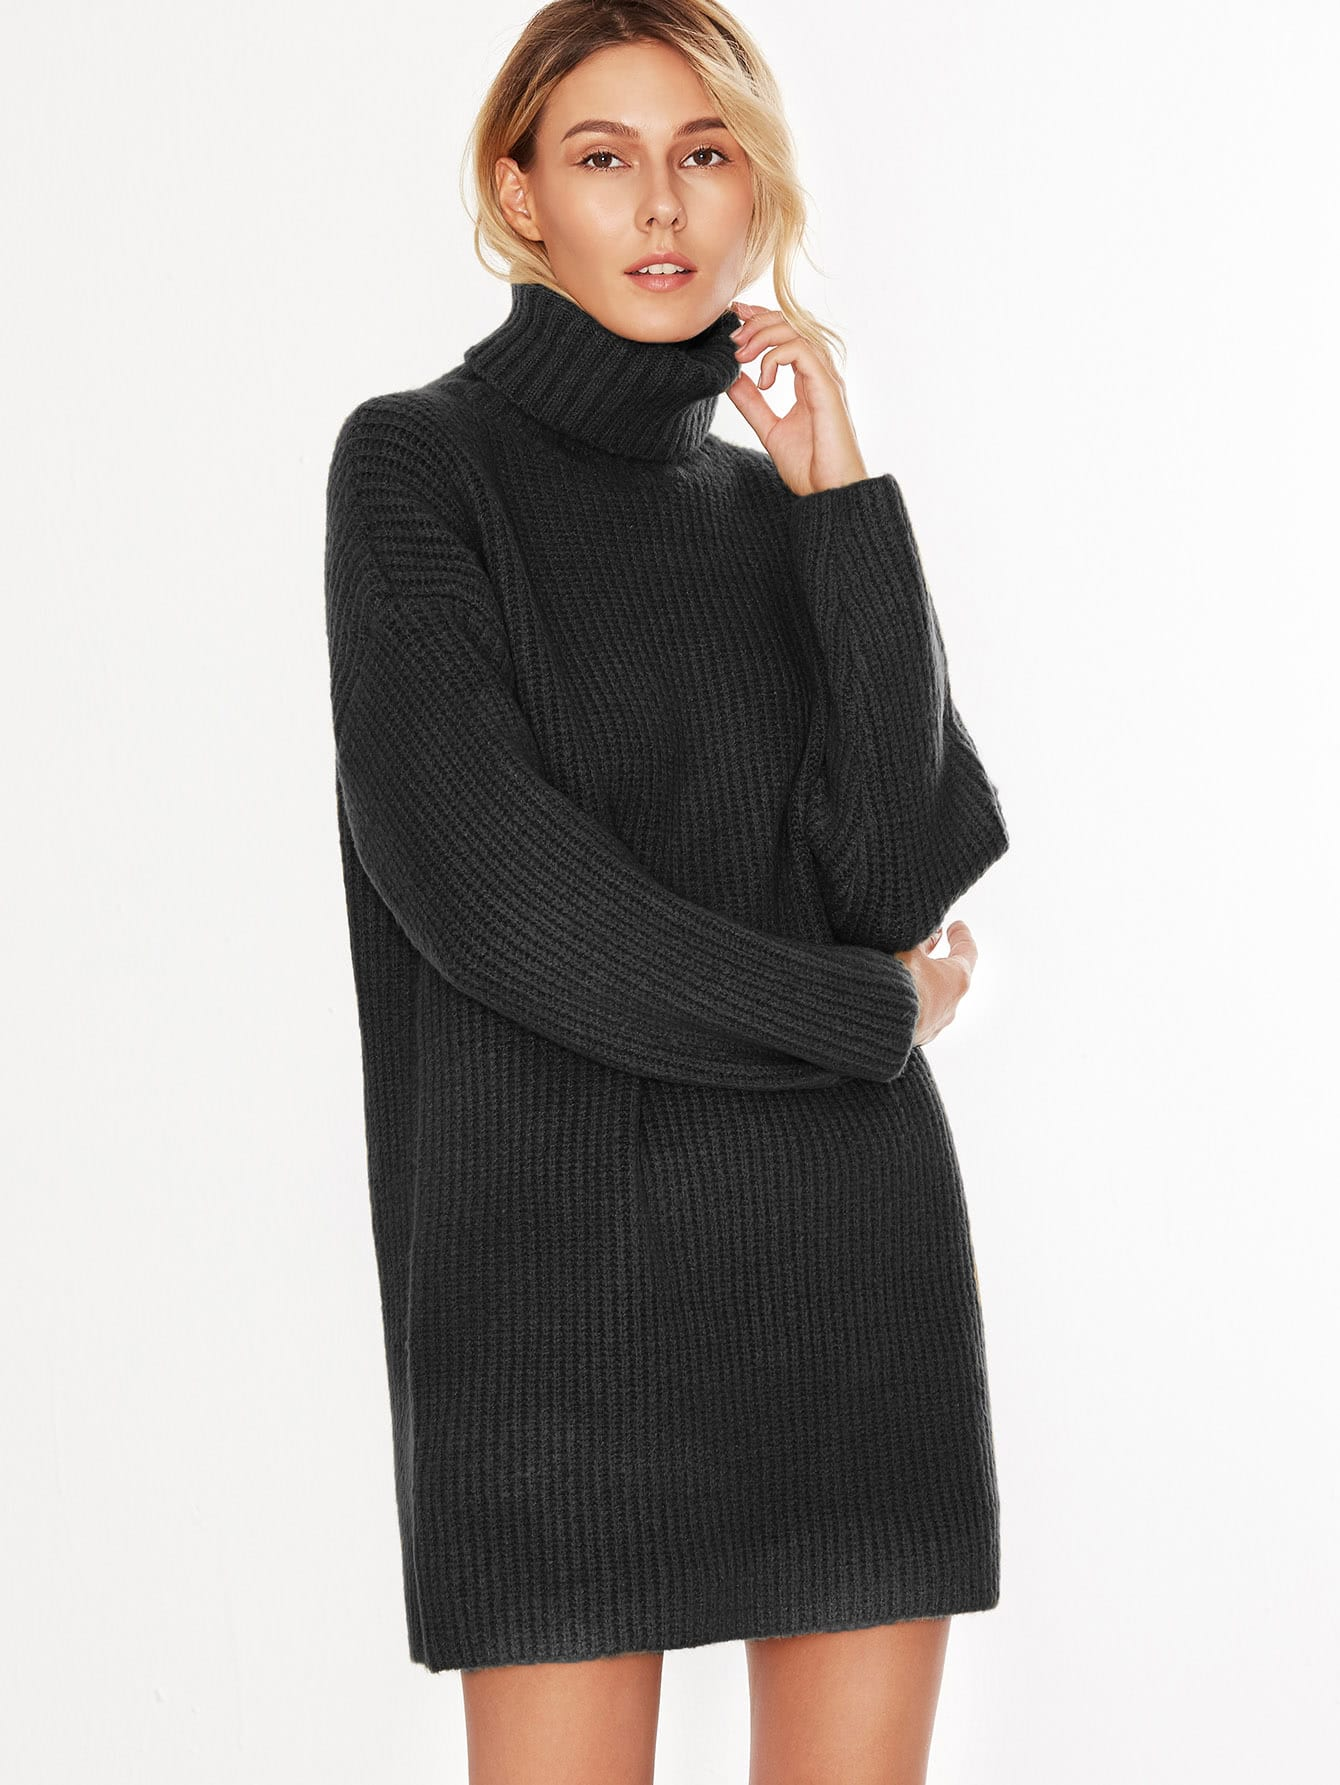 Black Turtleneck Drop Shoulder Sweater Dress -SheIn(Sheinside)